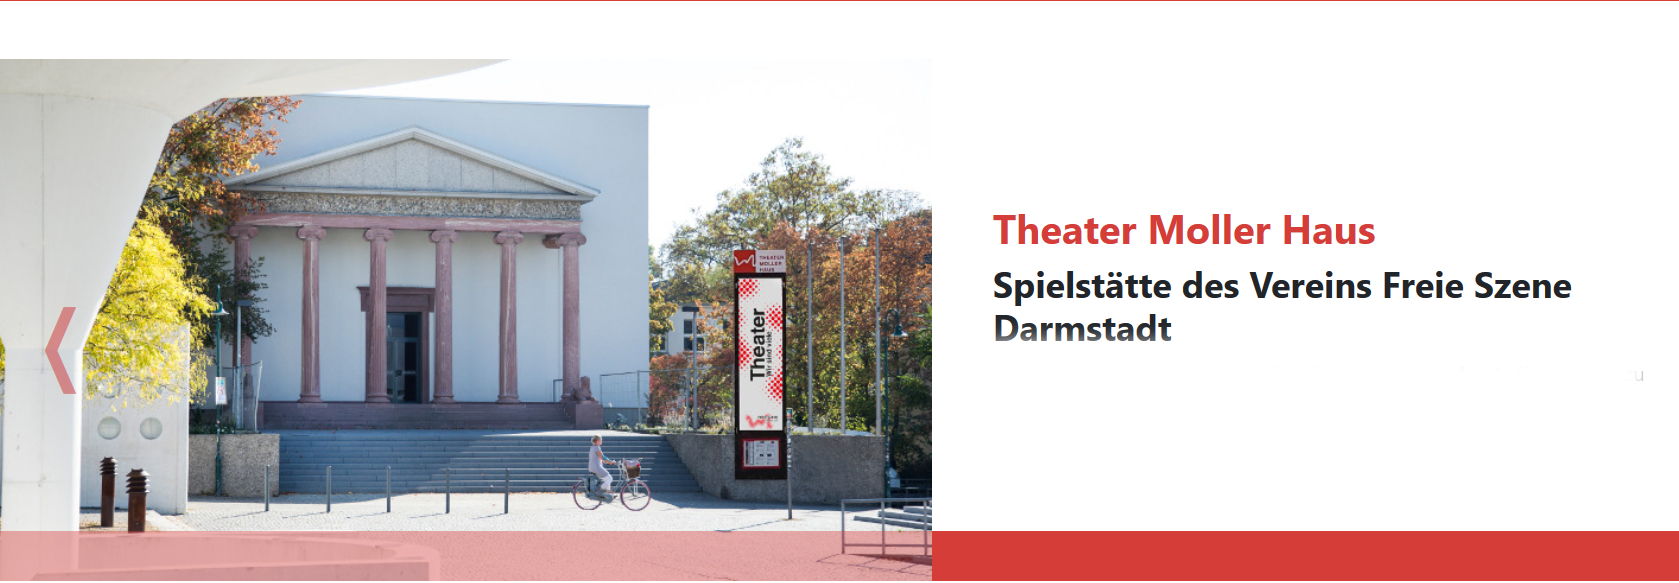 Screenshot Theater Mollerhaus, Darmstadt